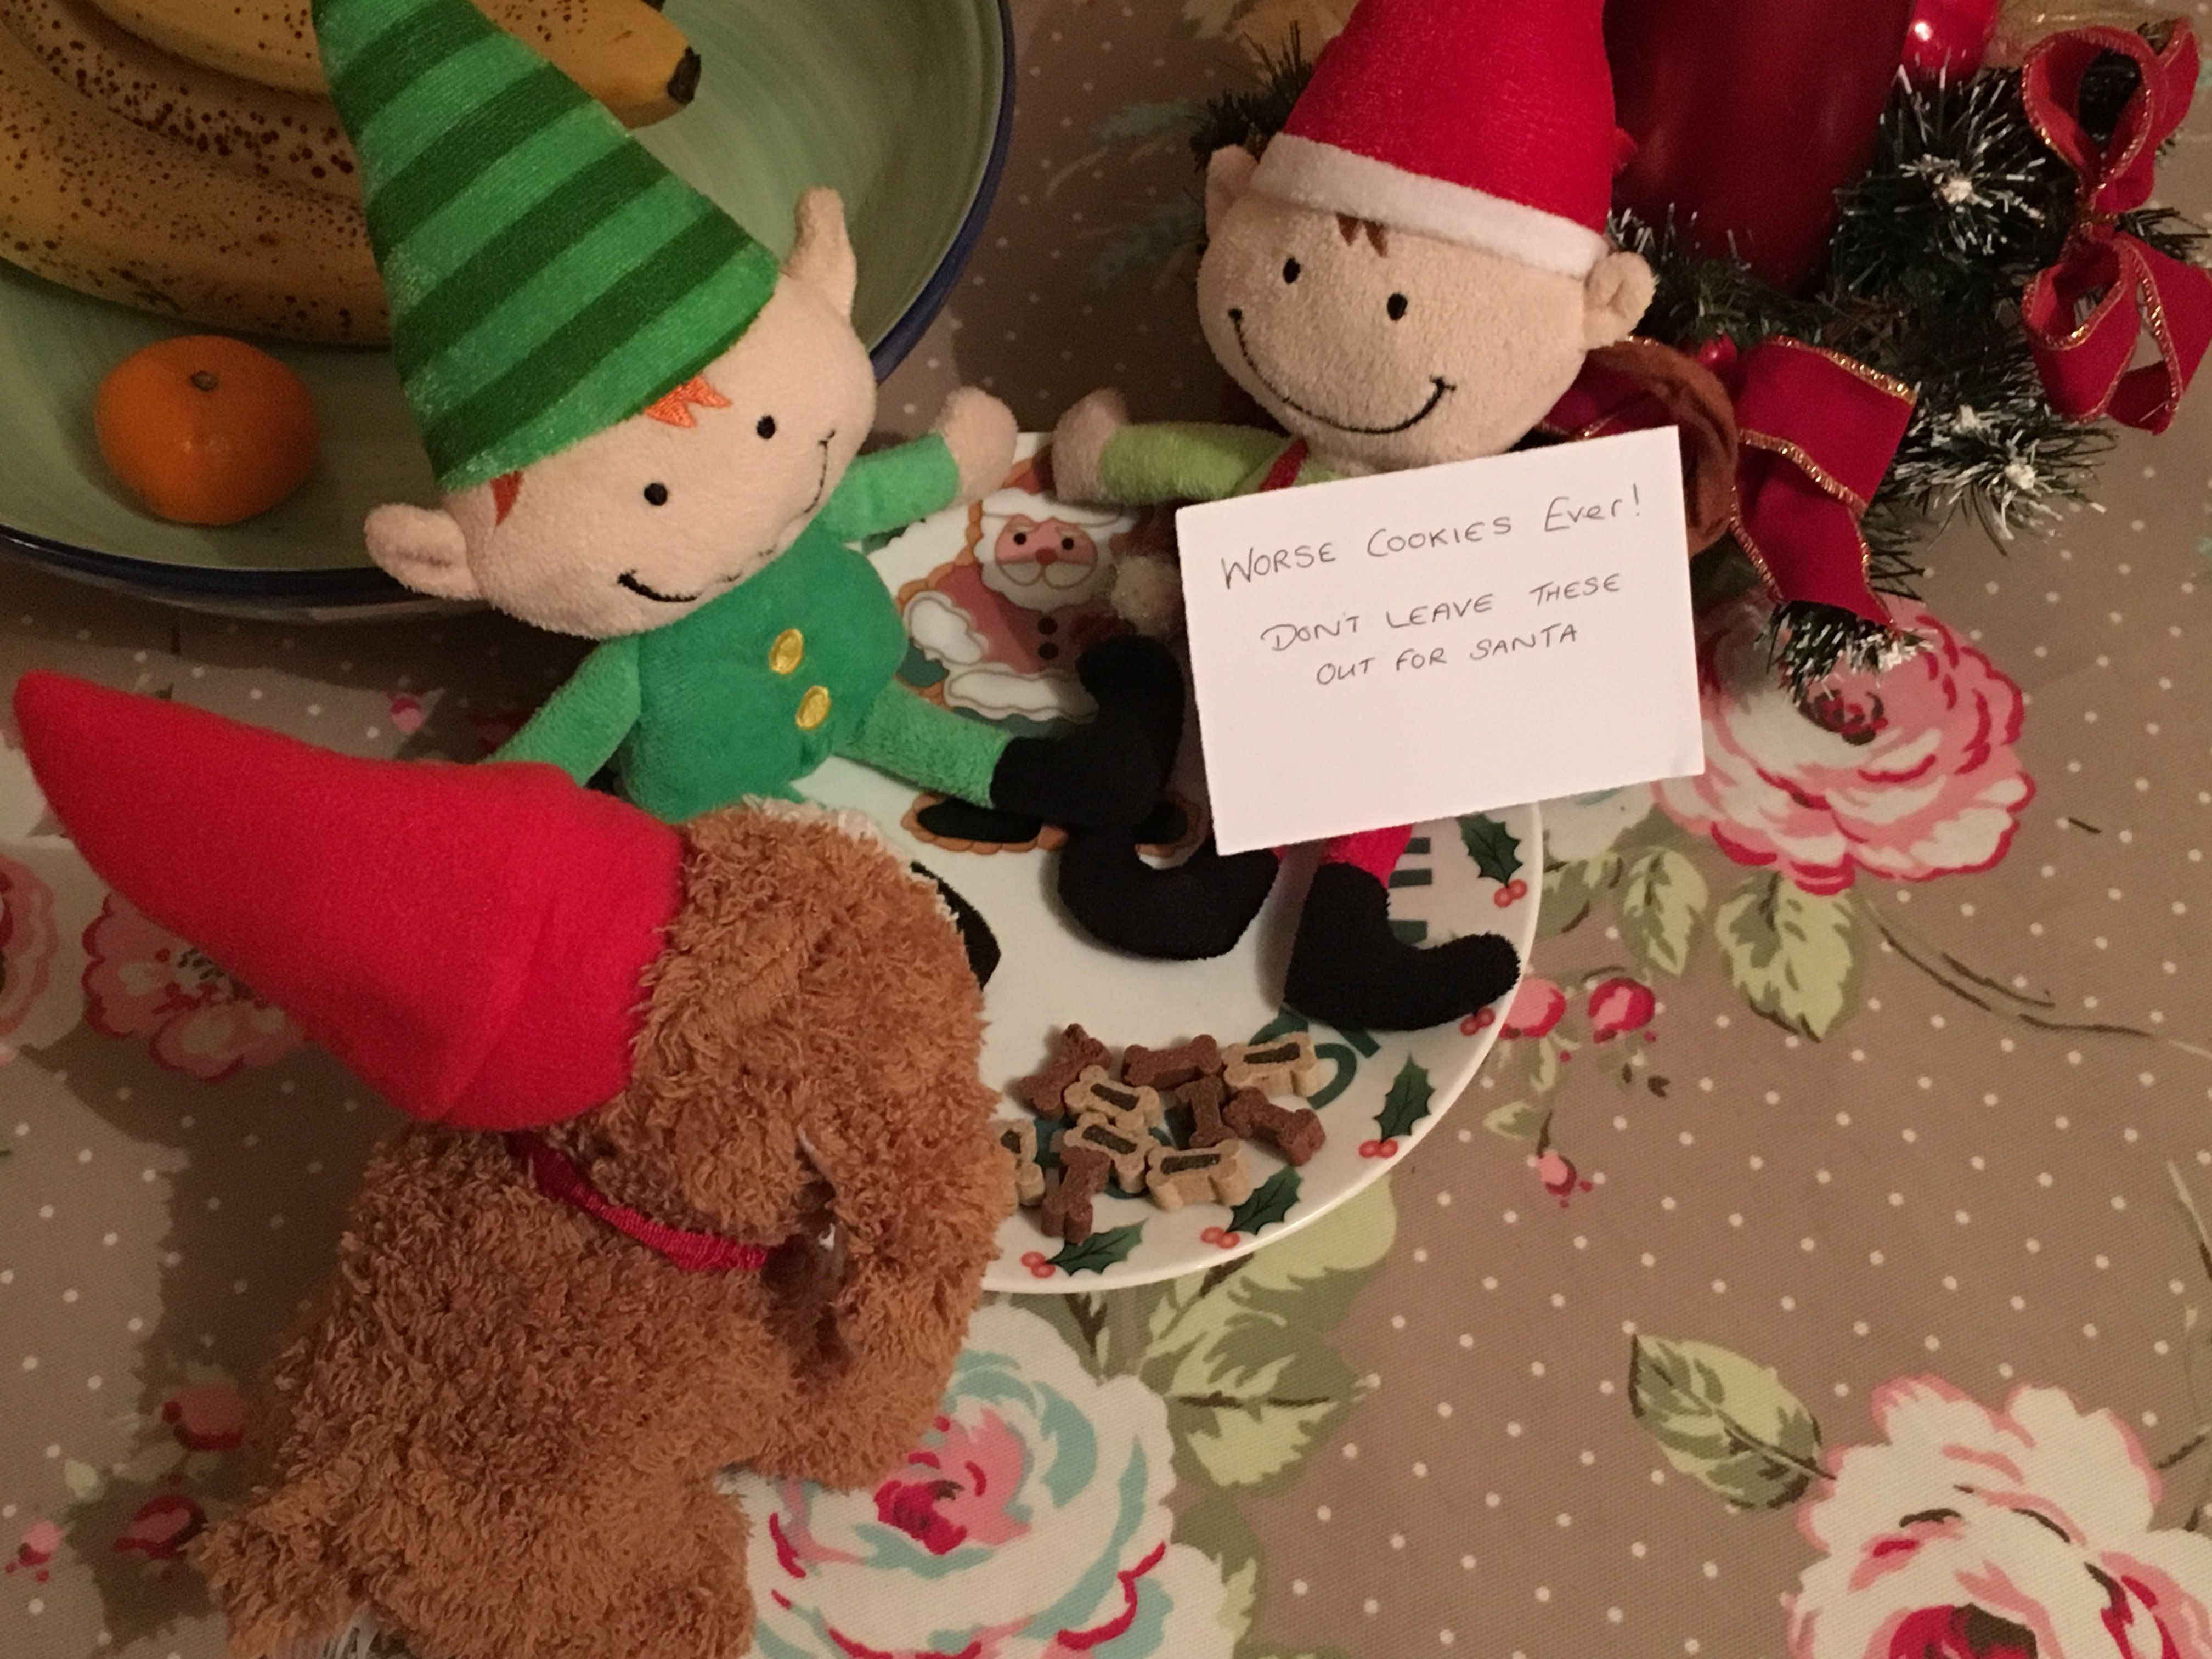 Day 12 don't leave dog biscuits for Santa, they don't taste so good.